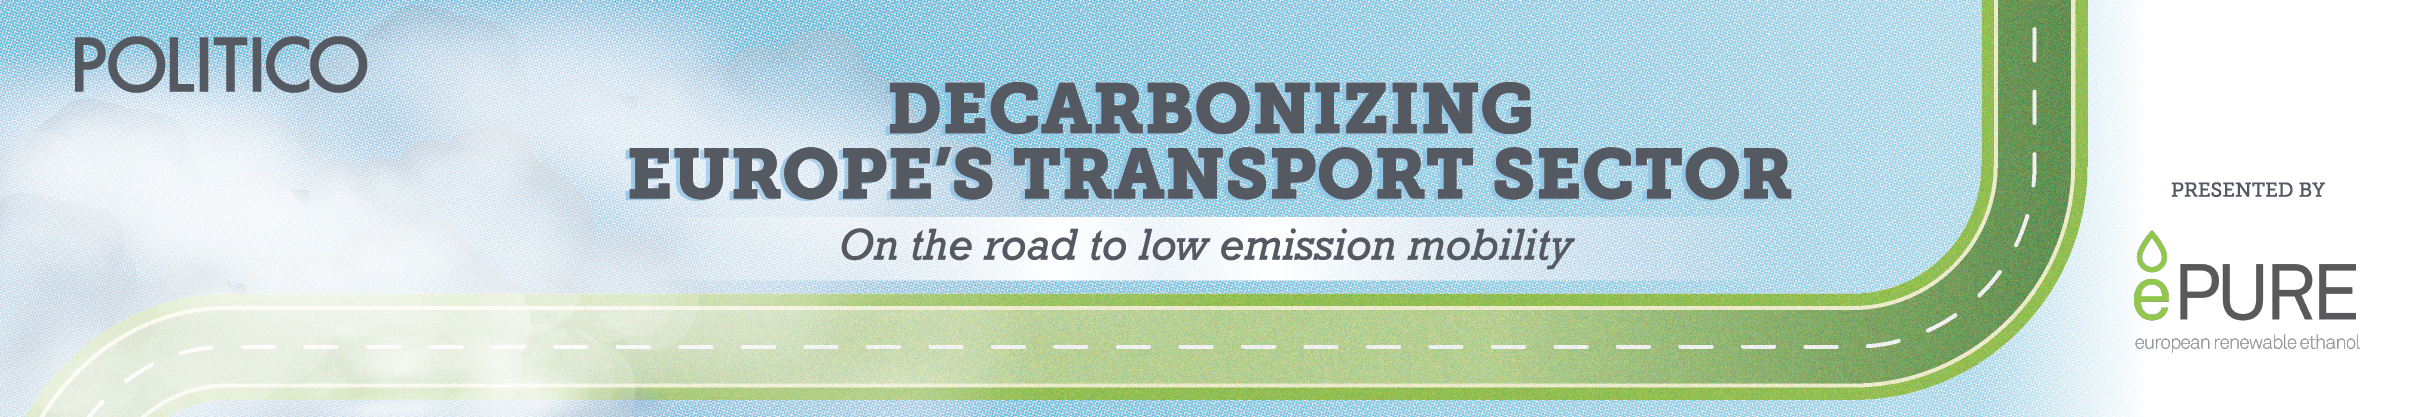 banner-decarbonizing_europes_transport_sector.png